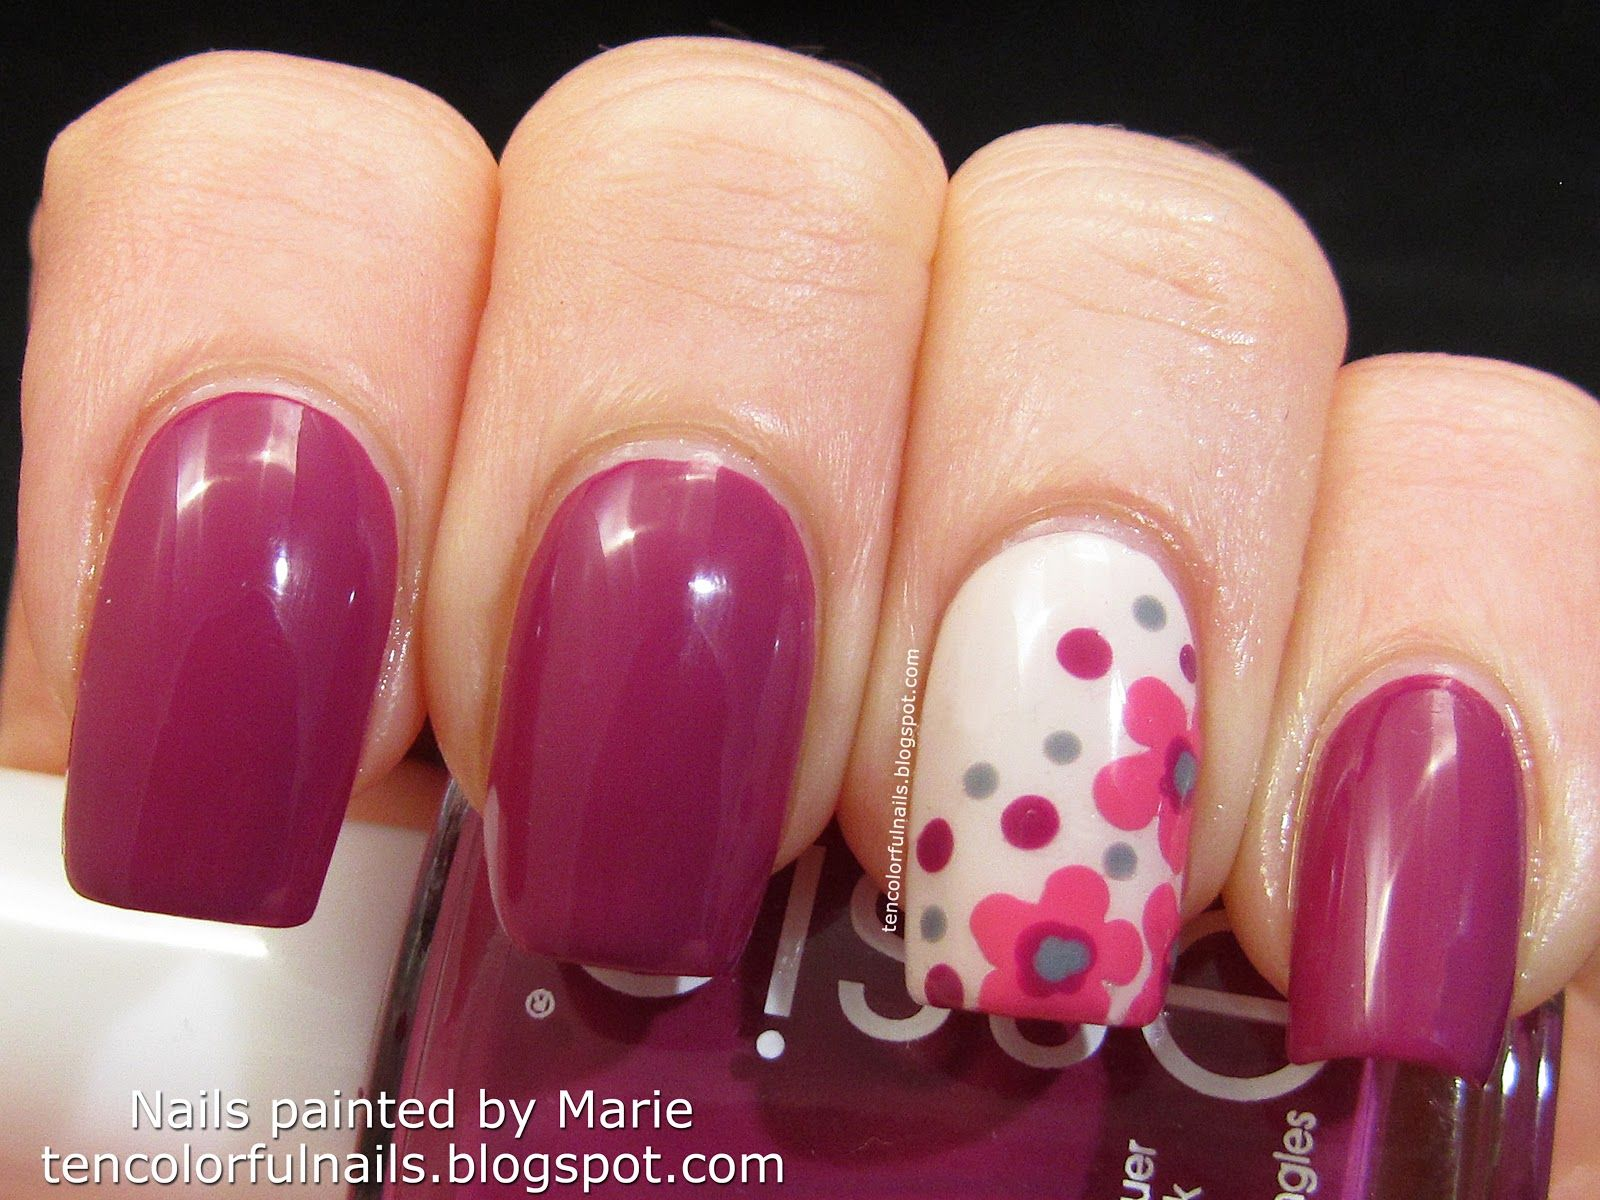 Full color nail art -  25 Best Ideas About Colorful Nails On Pinterest Pretty Nails Glitter Nails And Colorful Nail Designs